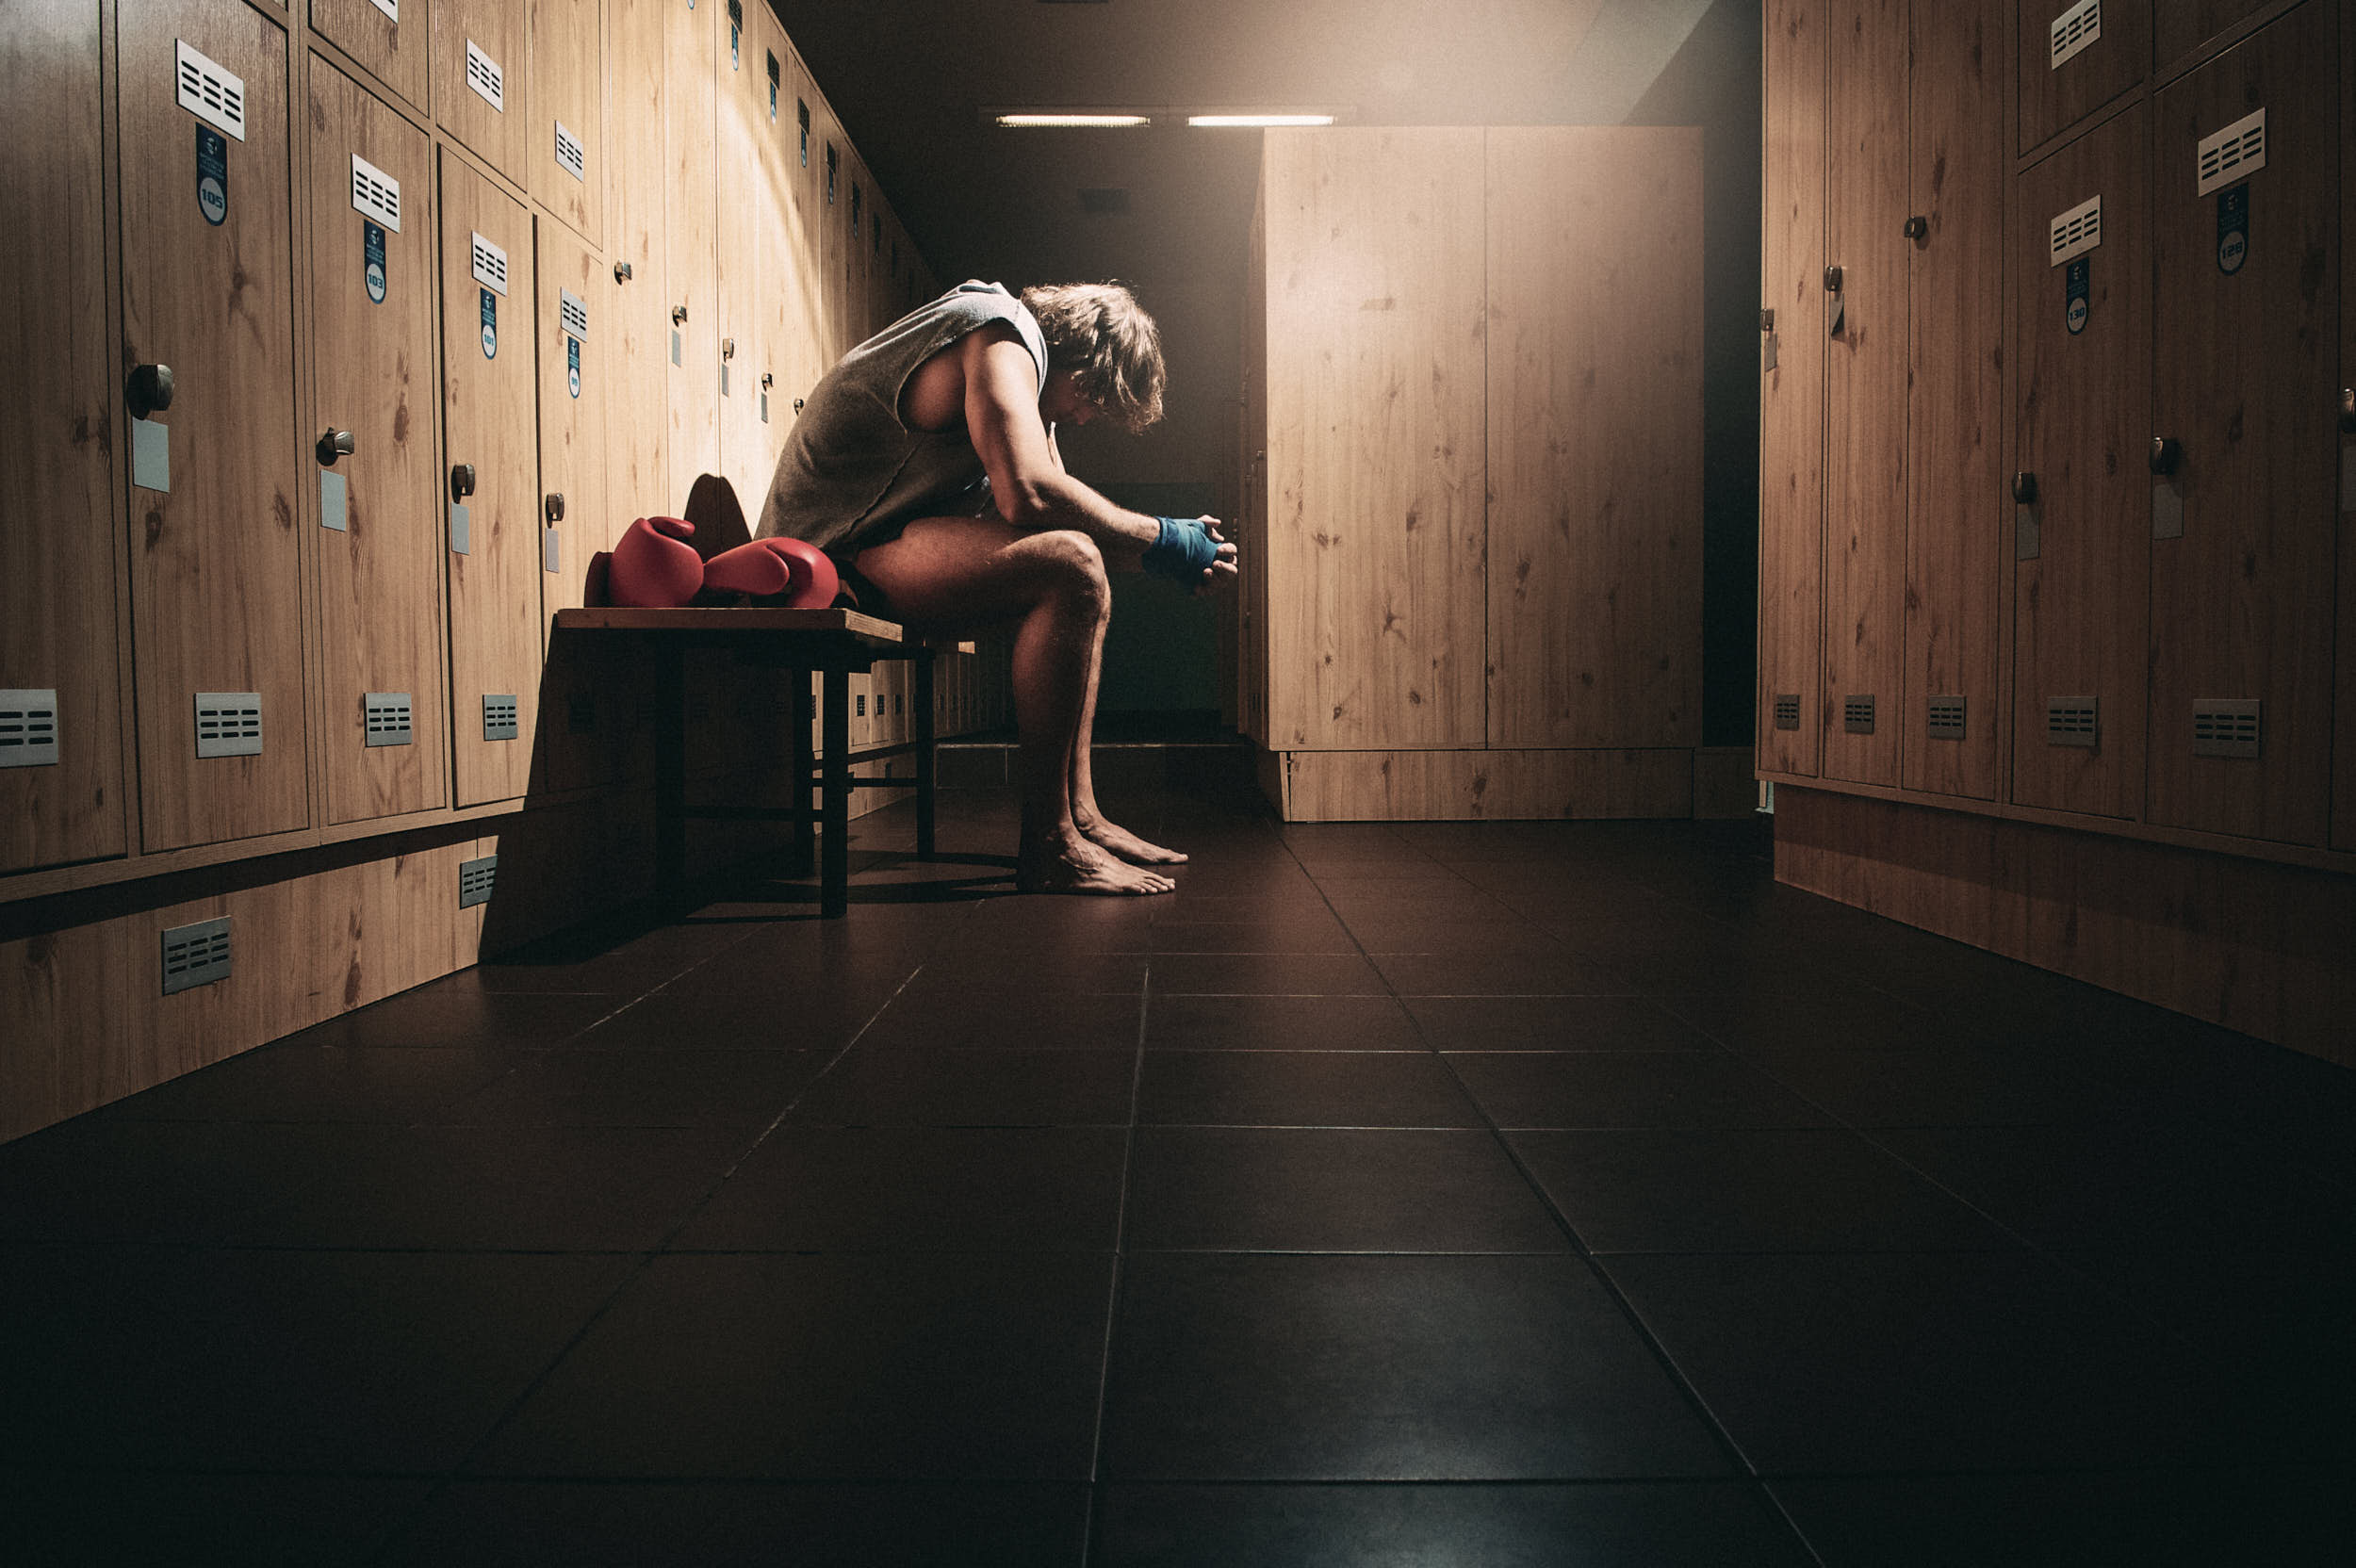 action sports advertising photography: boxer sitting in a locker room preparing for the fight.